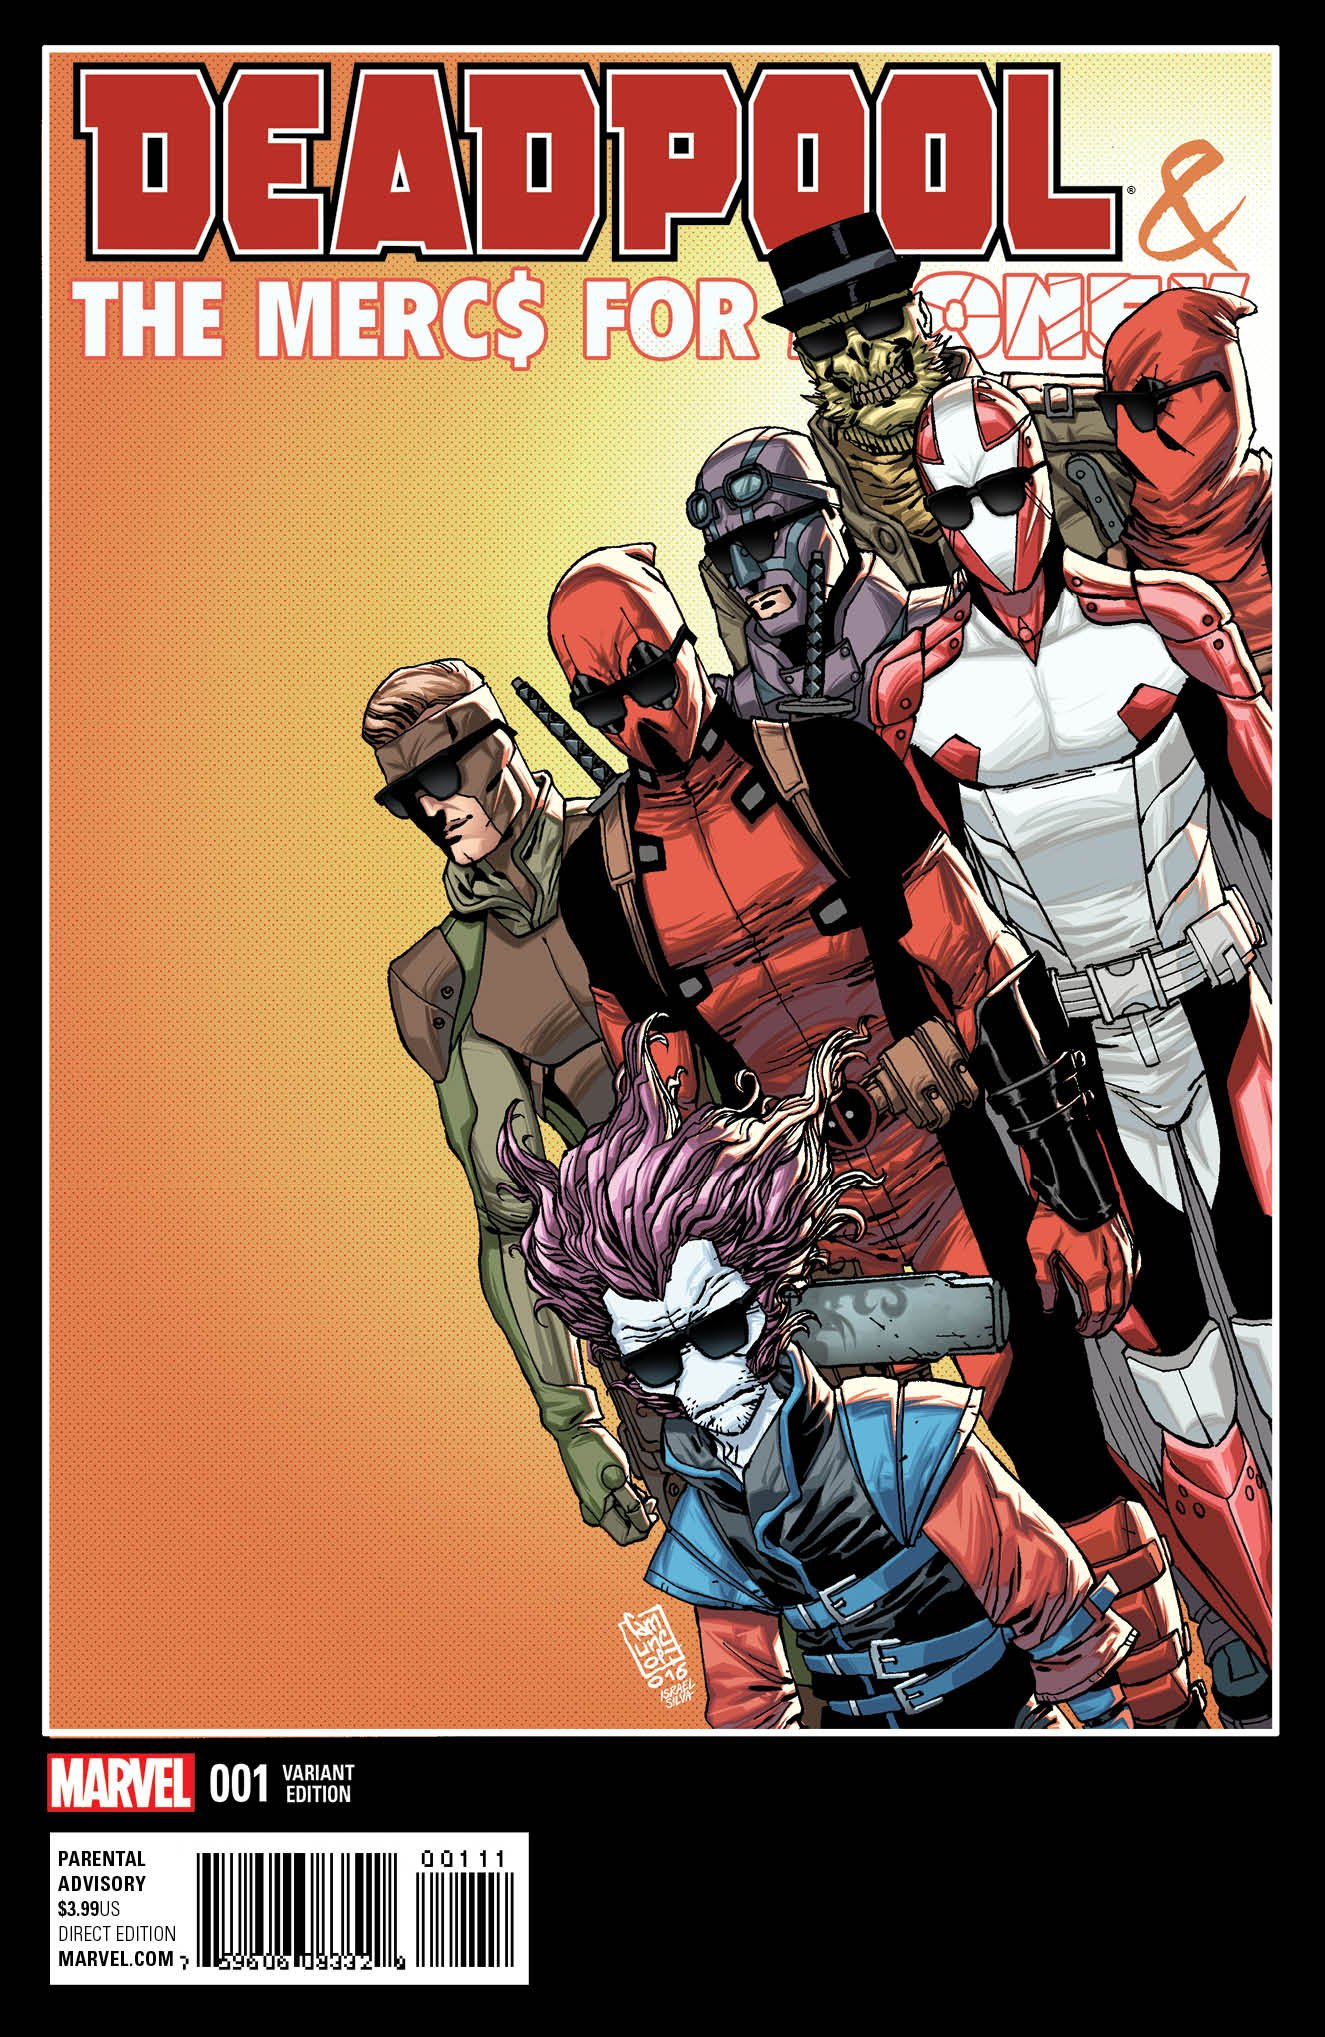 Download Deadpool & the Mercs for Money Vol II #1B Variant cover by Giuseppe Camuncoli pdf